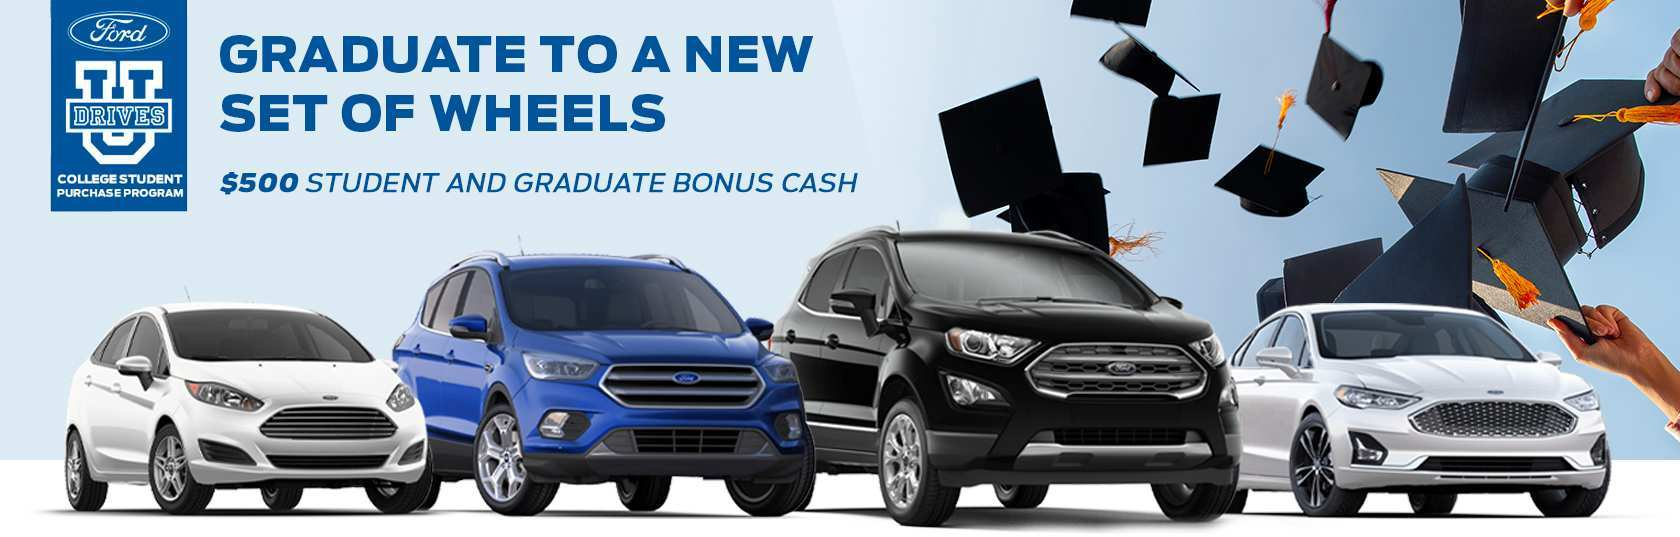 96 New Ford Graduate Program 2020 Overview with Ford Graduate Program 2020